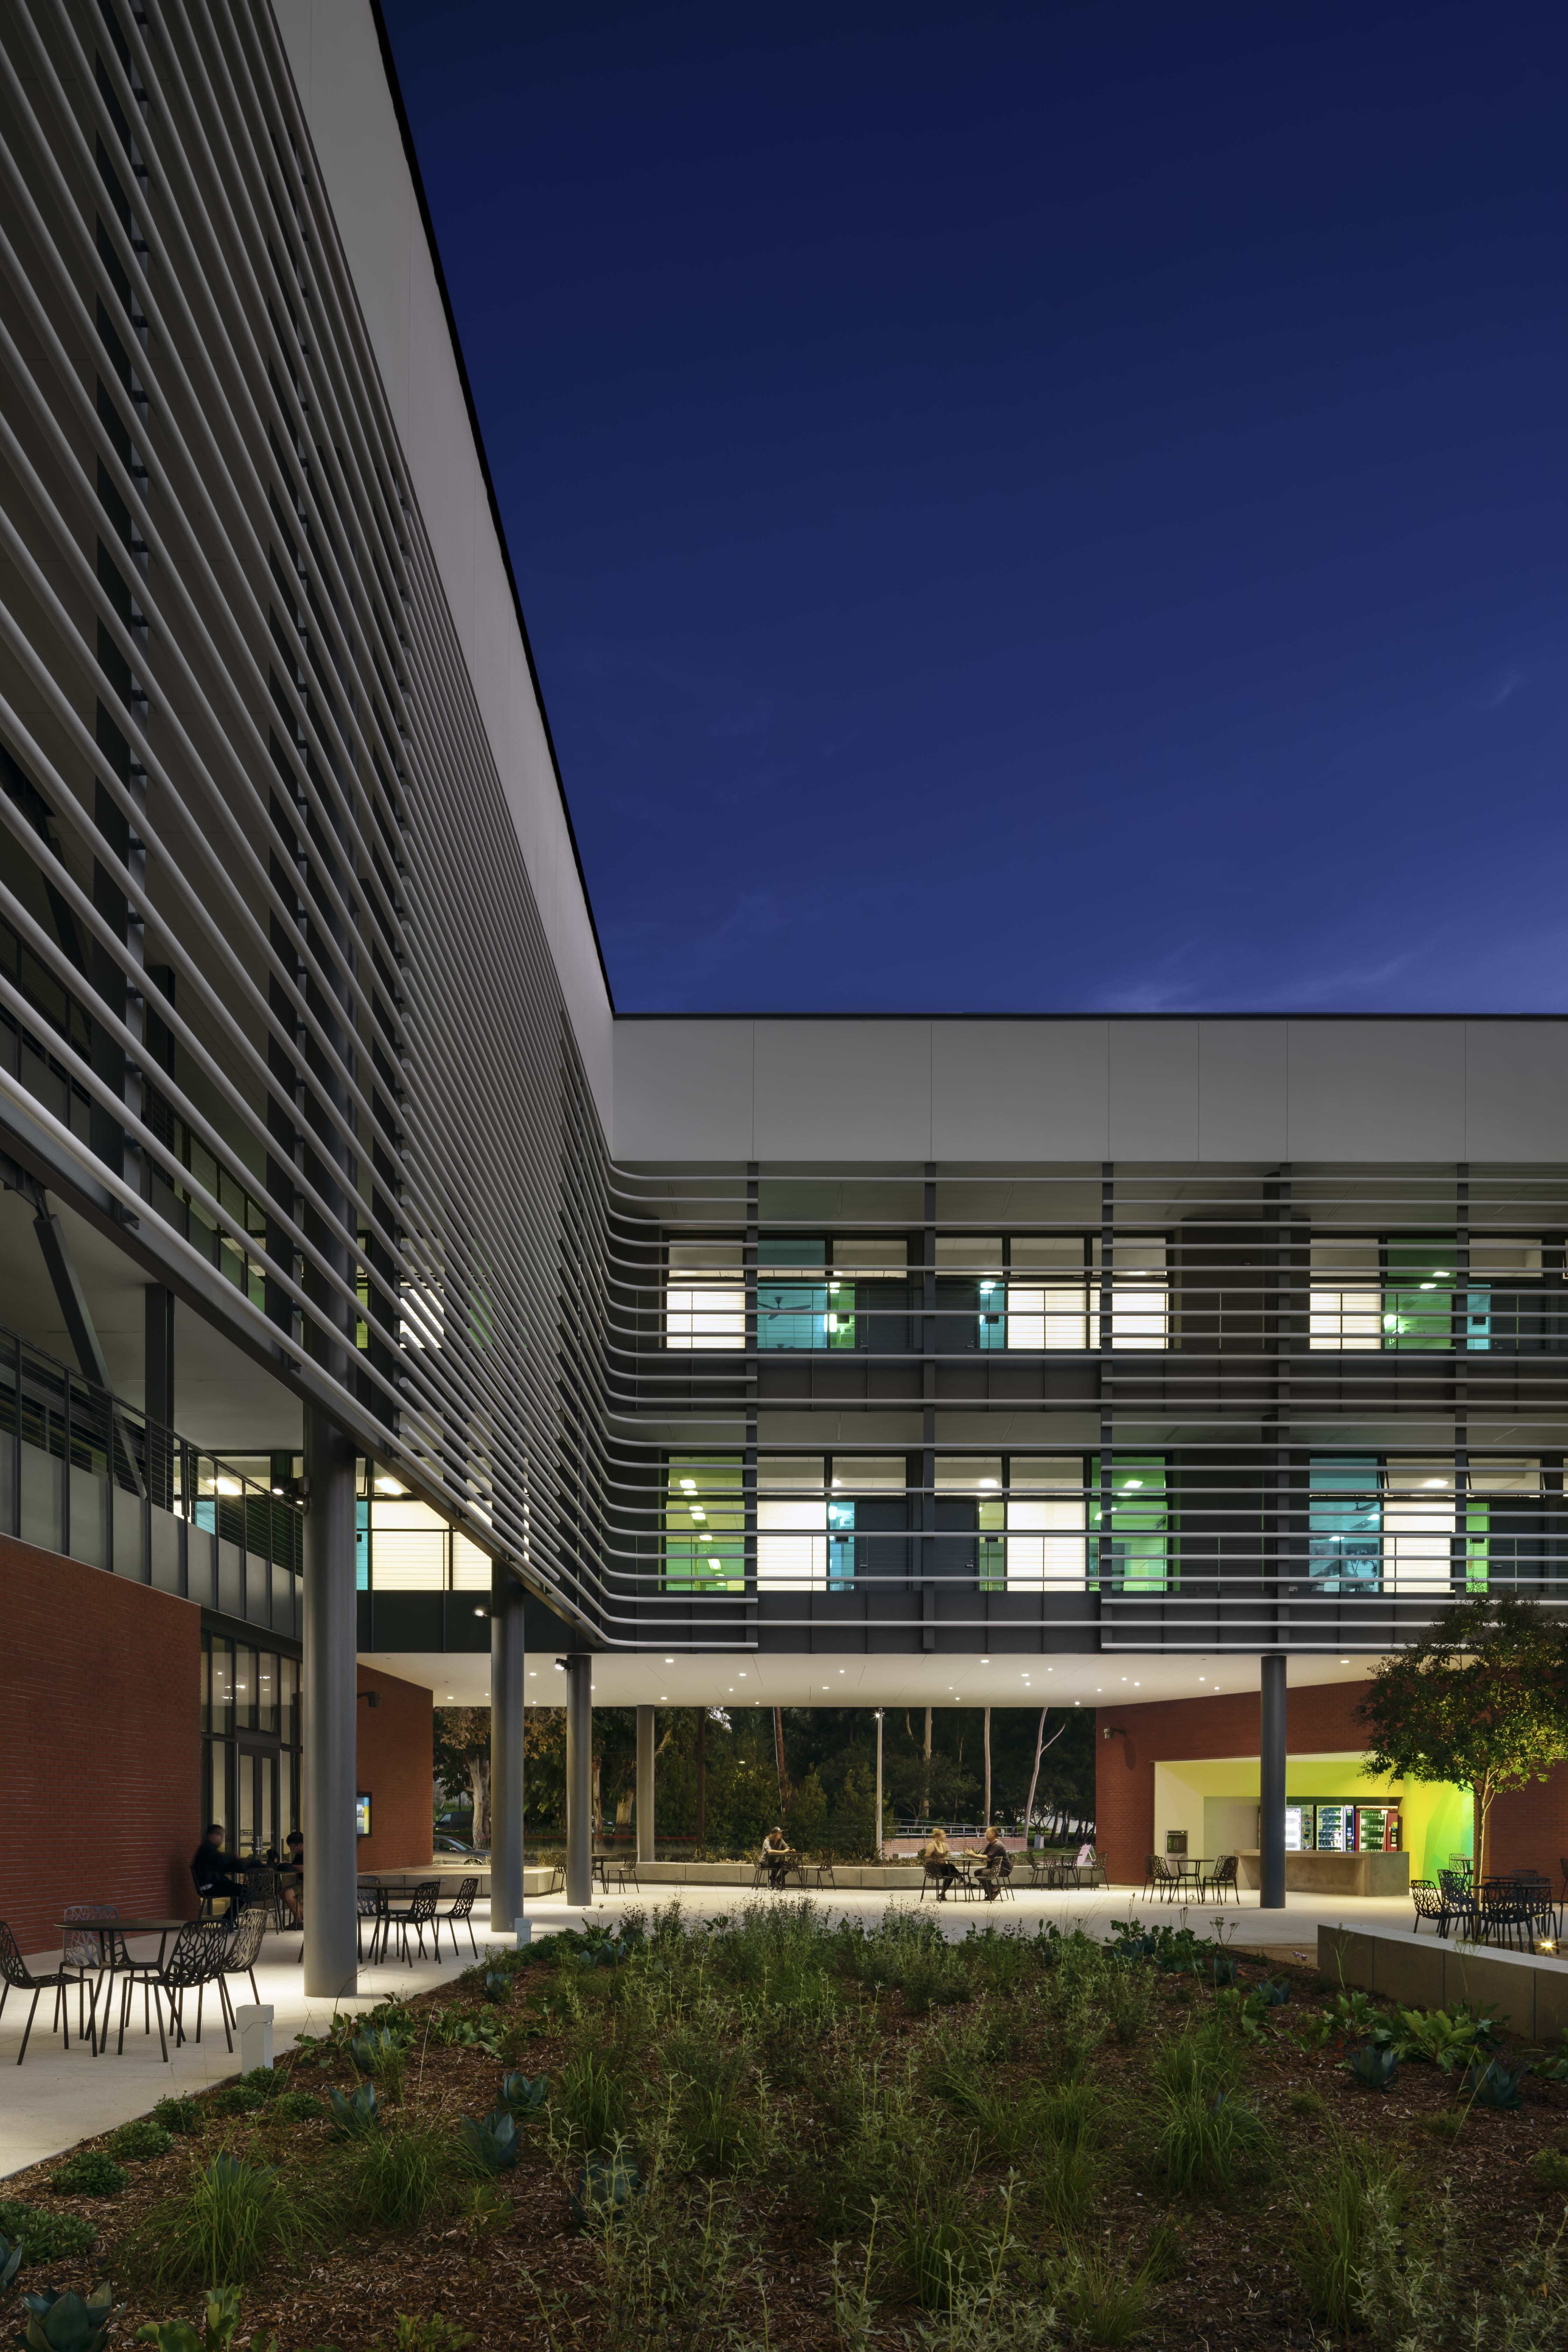 CCPE College of Continuing and Professional Education at California State University Long Beach. CSULB MATT Construction exterior night